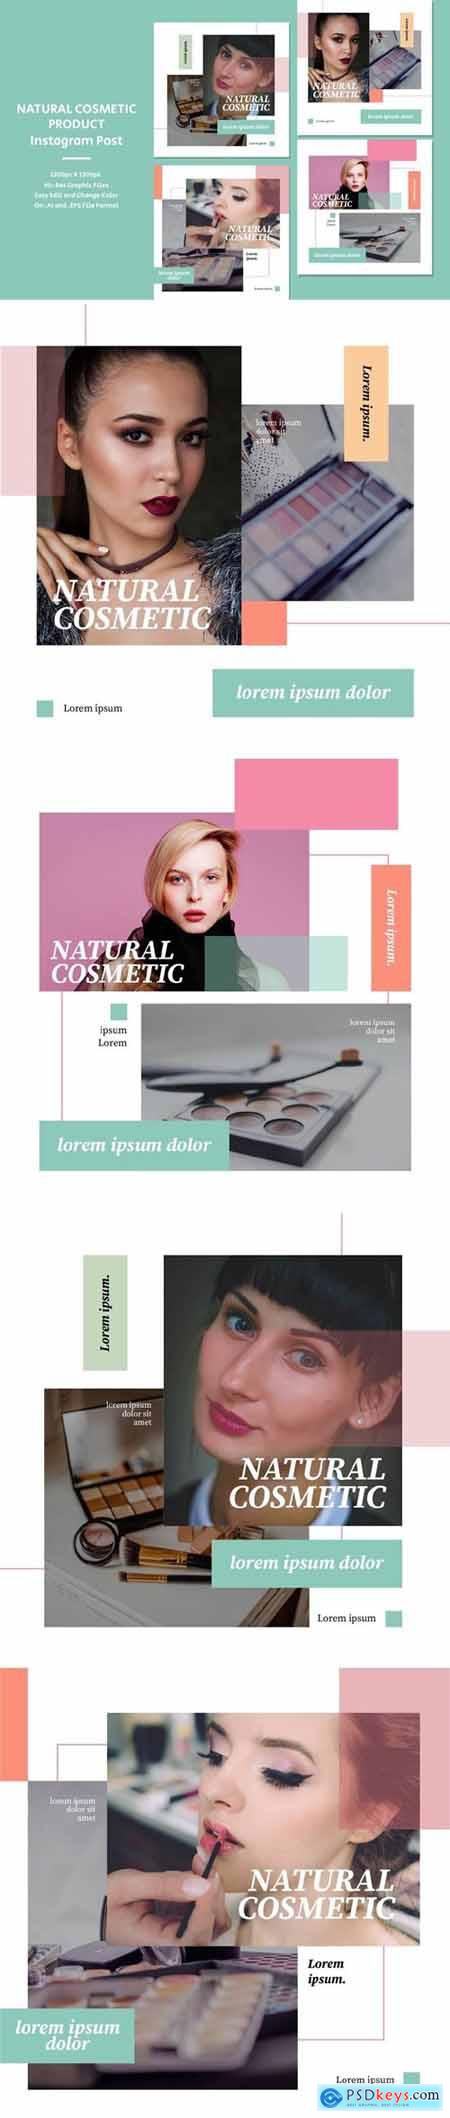 Natural Cosmetic Product